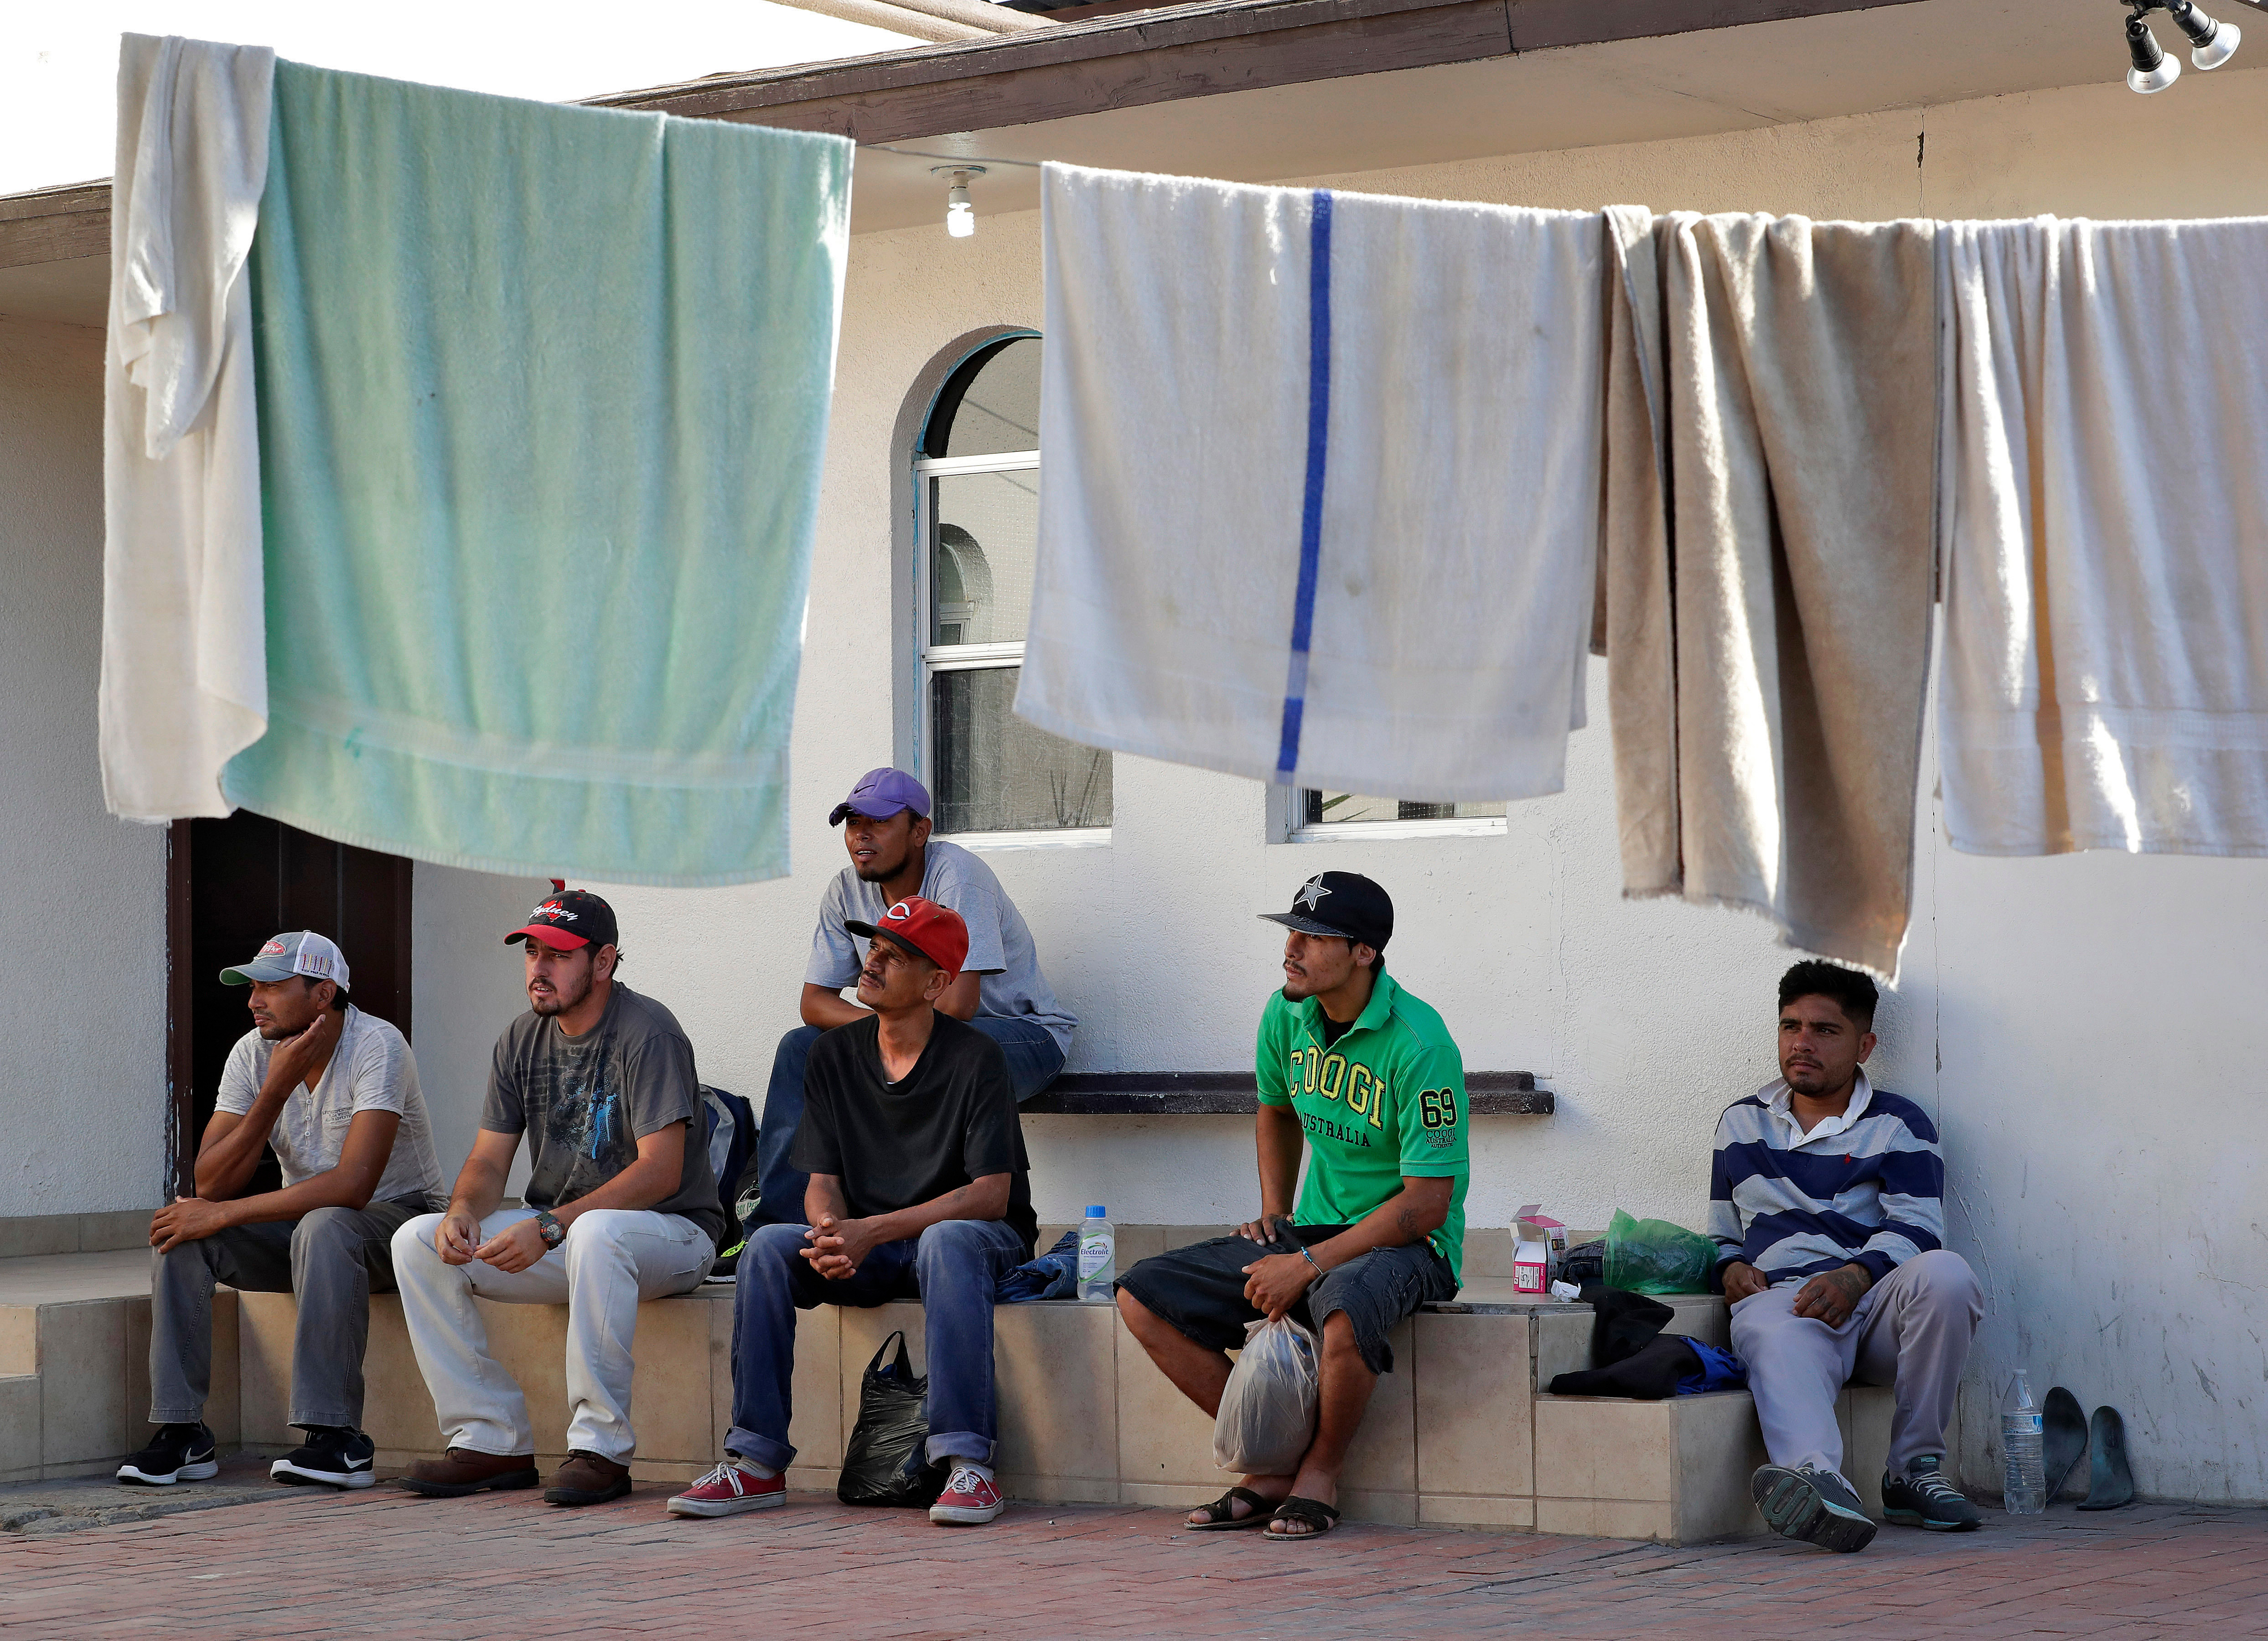 In this July 19, 2018 file photo, Central American men sit in the courtyard of the Asociacion Casa Del Migrante  La Divina Providencia  group house as their laundry dries in San Luis, Sonora, Mexico. Thousands of families and unaccompanied children are continuing to cross the U.S. border in Arizona and California even after learning of the government's family separation policy upon apprehension.